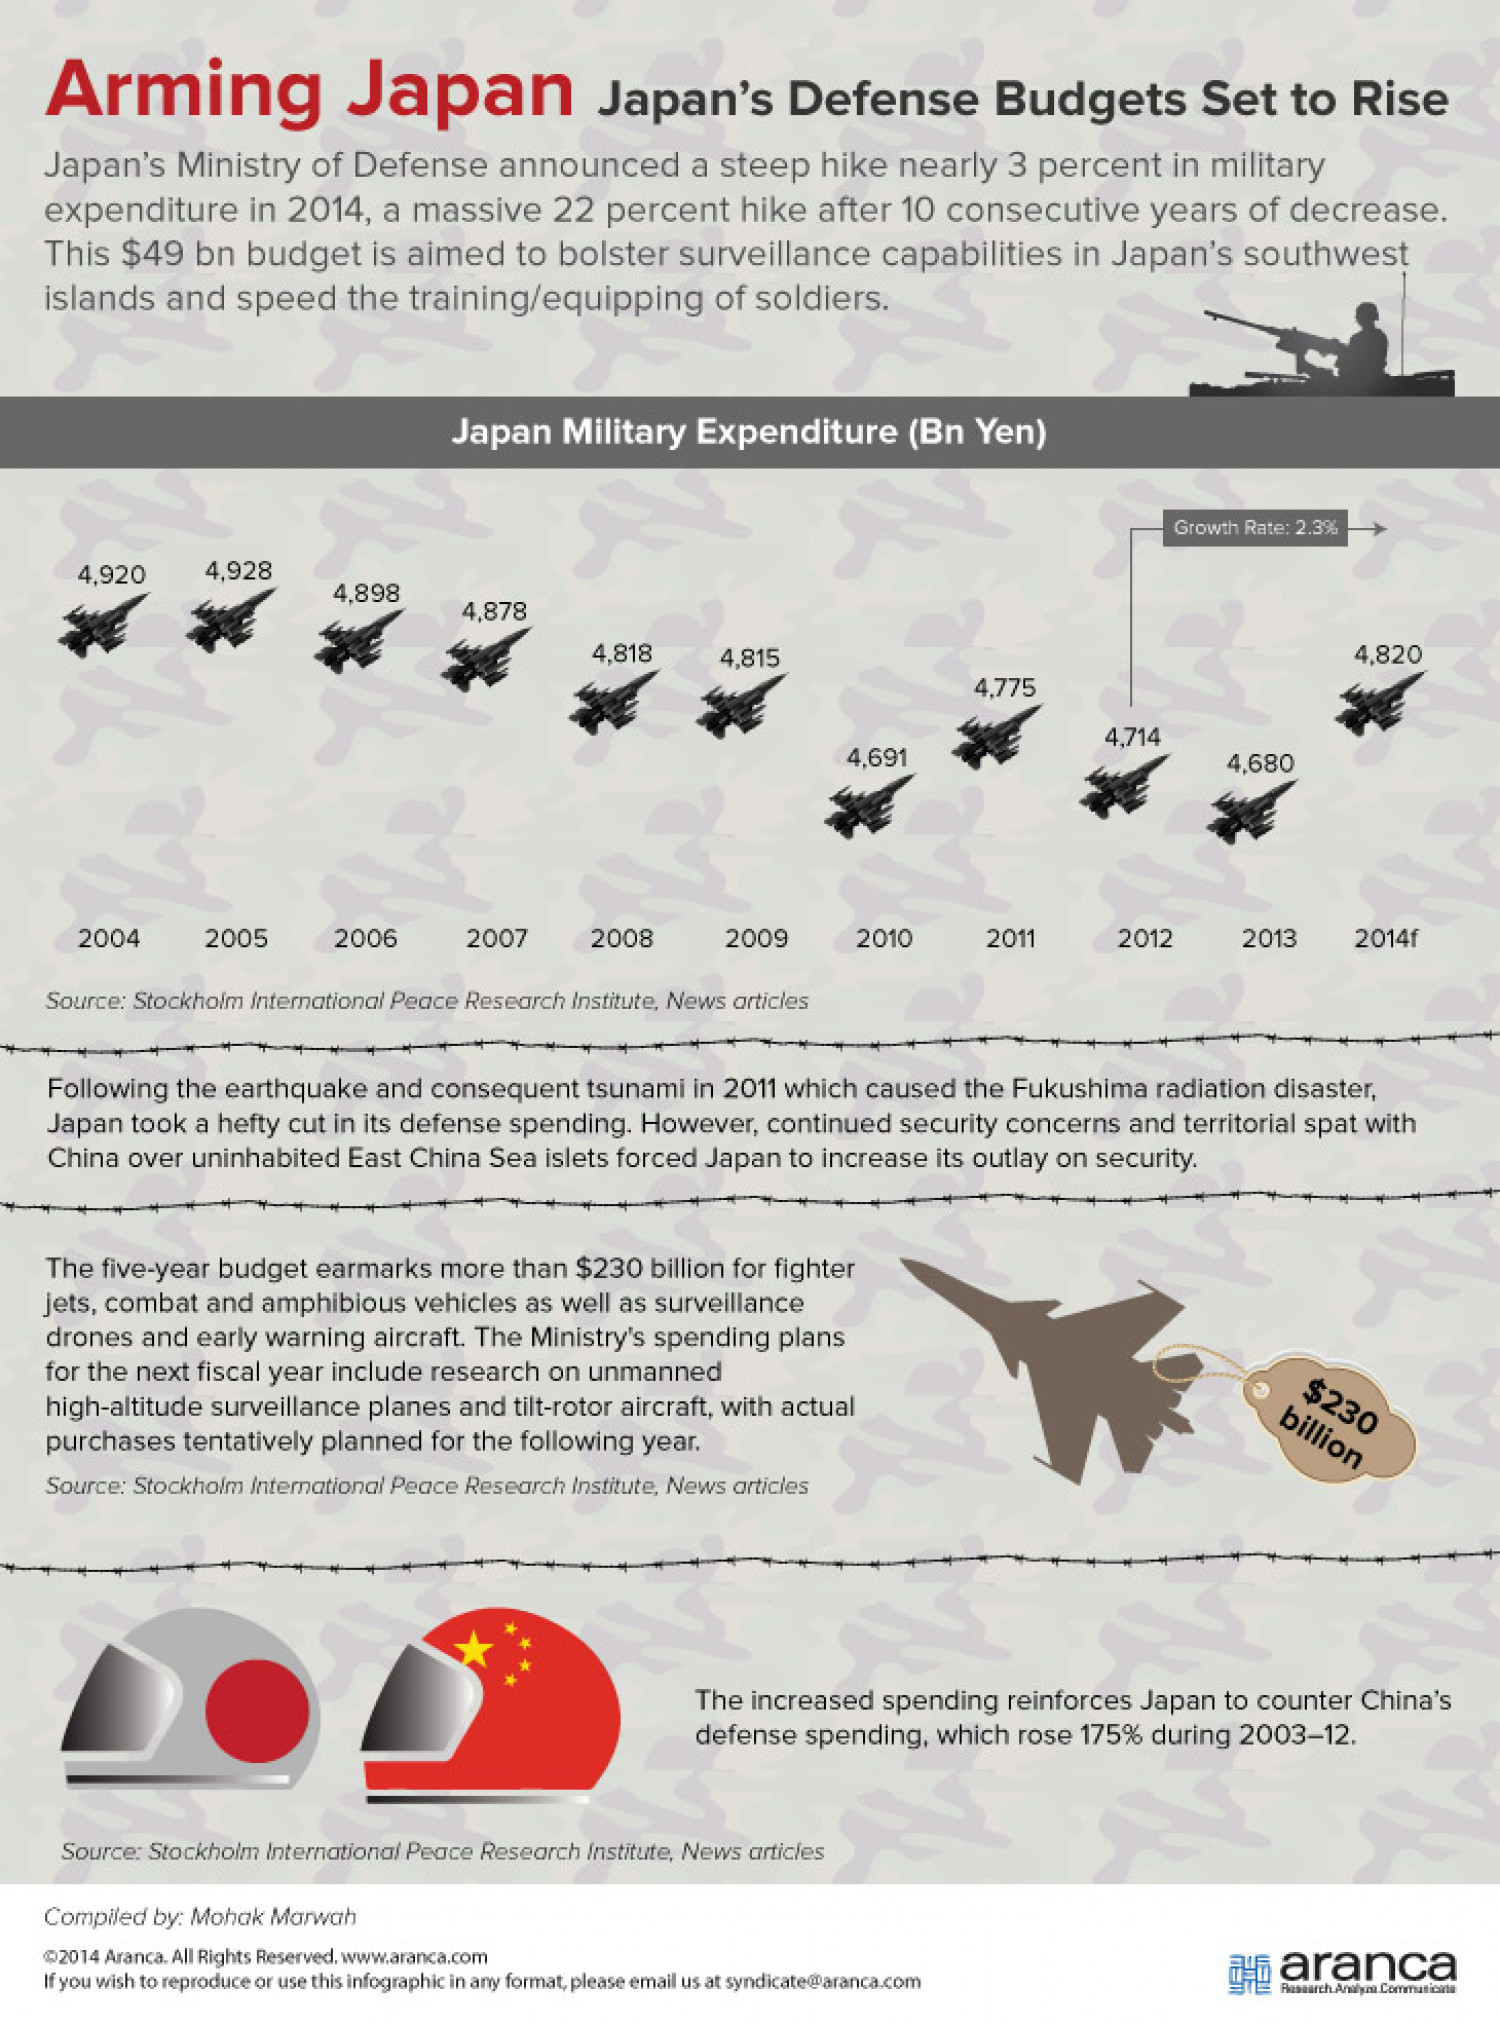 Aranca | Arming Japan - Japans's Defense Budget Set to Rise Infographic